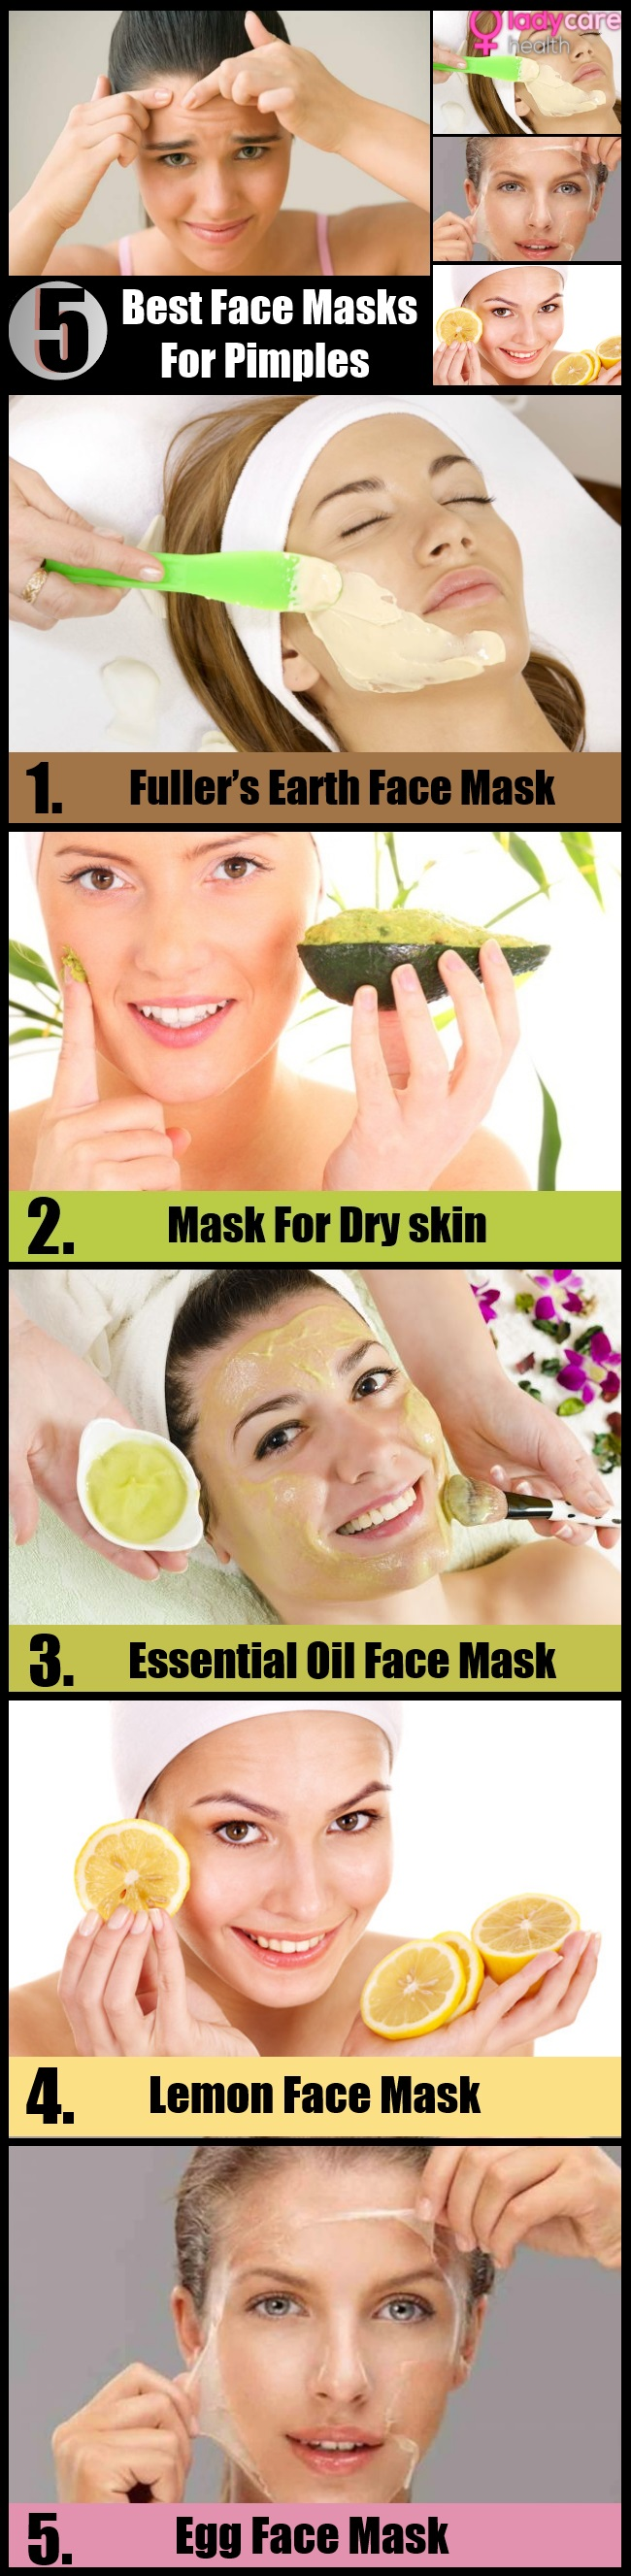 Best Face Masks For Pimples